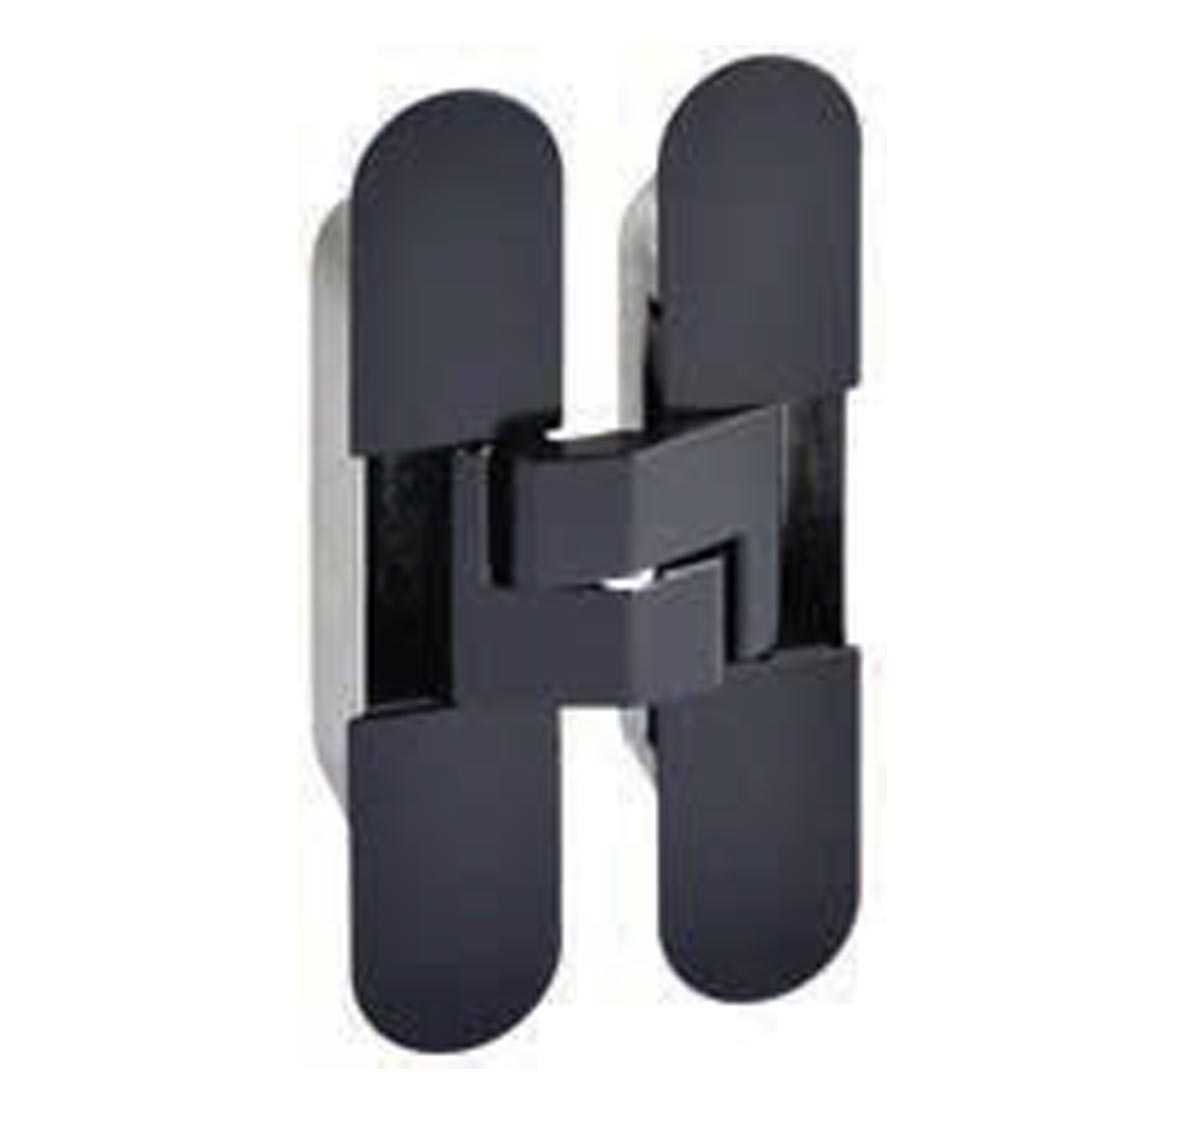 door hinge hotel door hinge fire rated door hinge myanmar fire door hinge guestroom door hinge